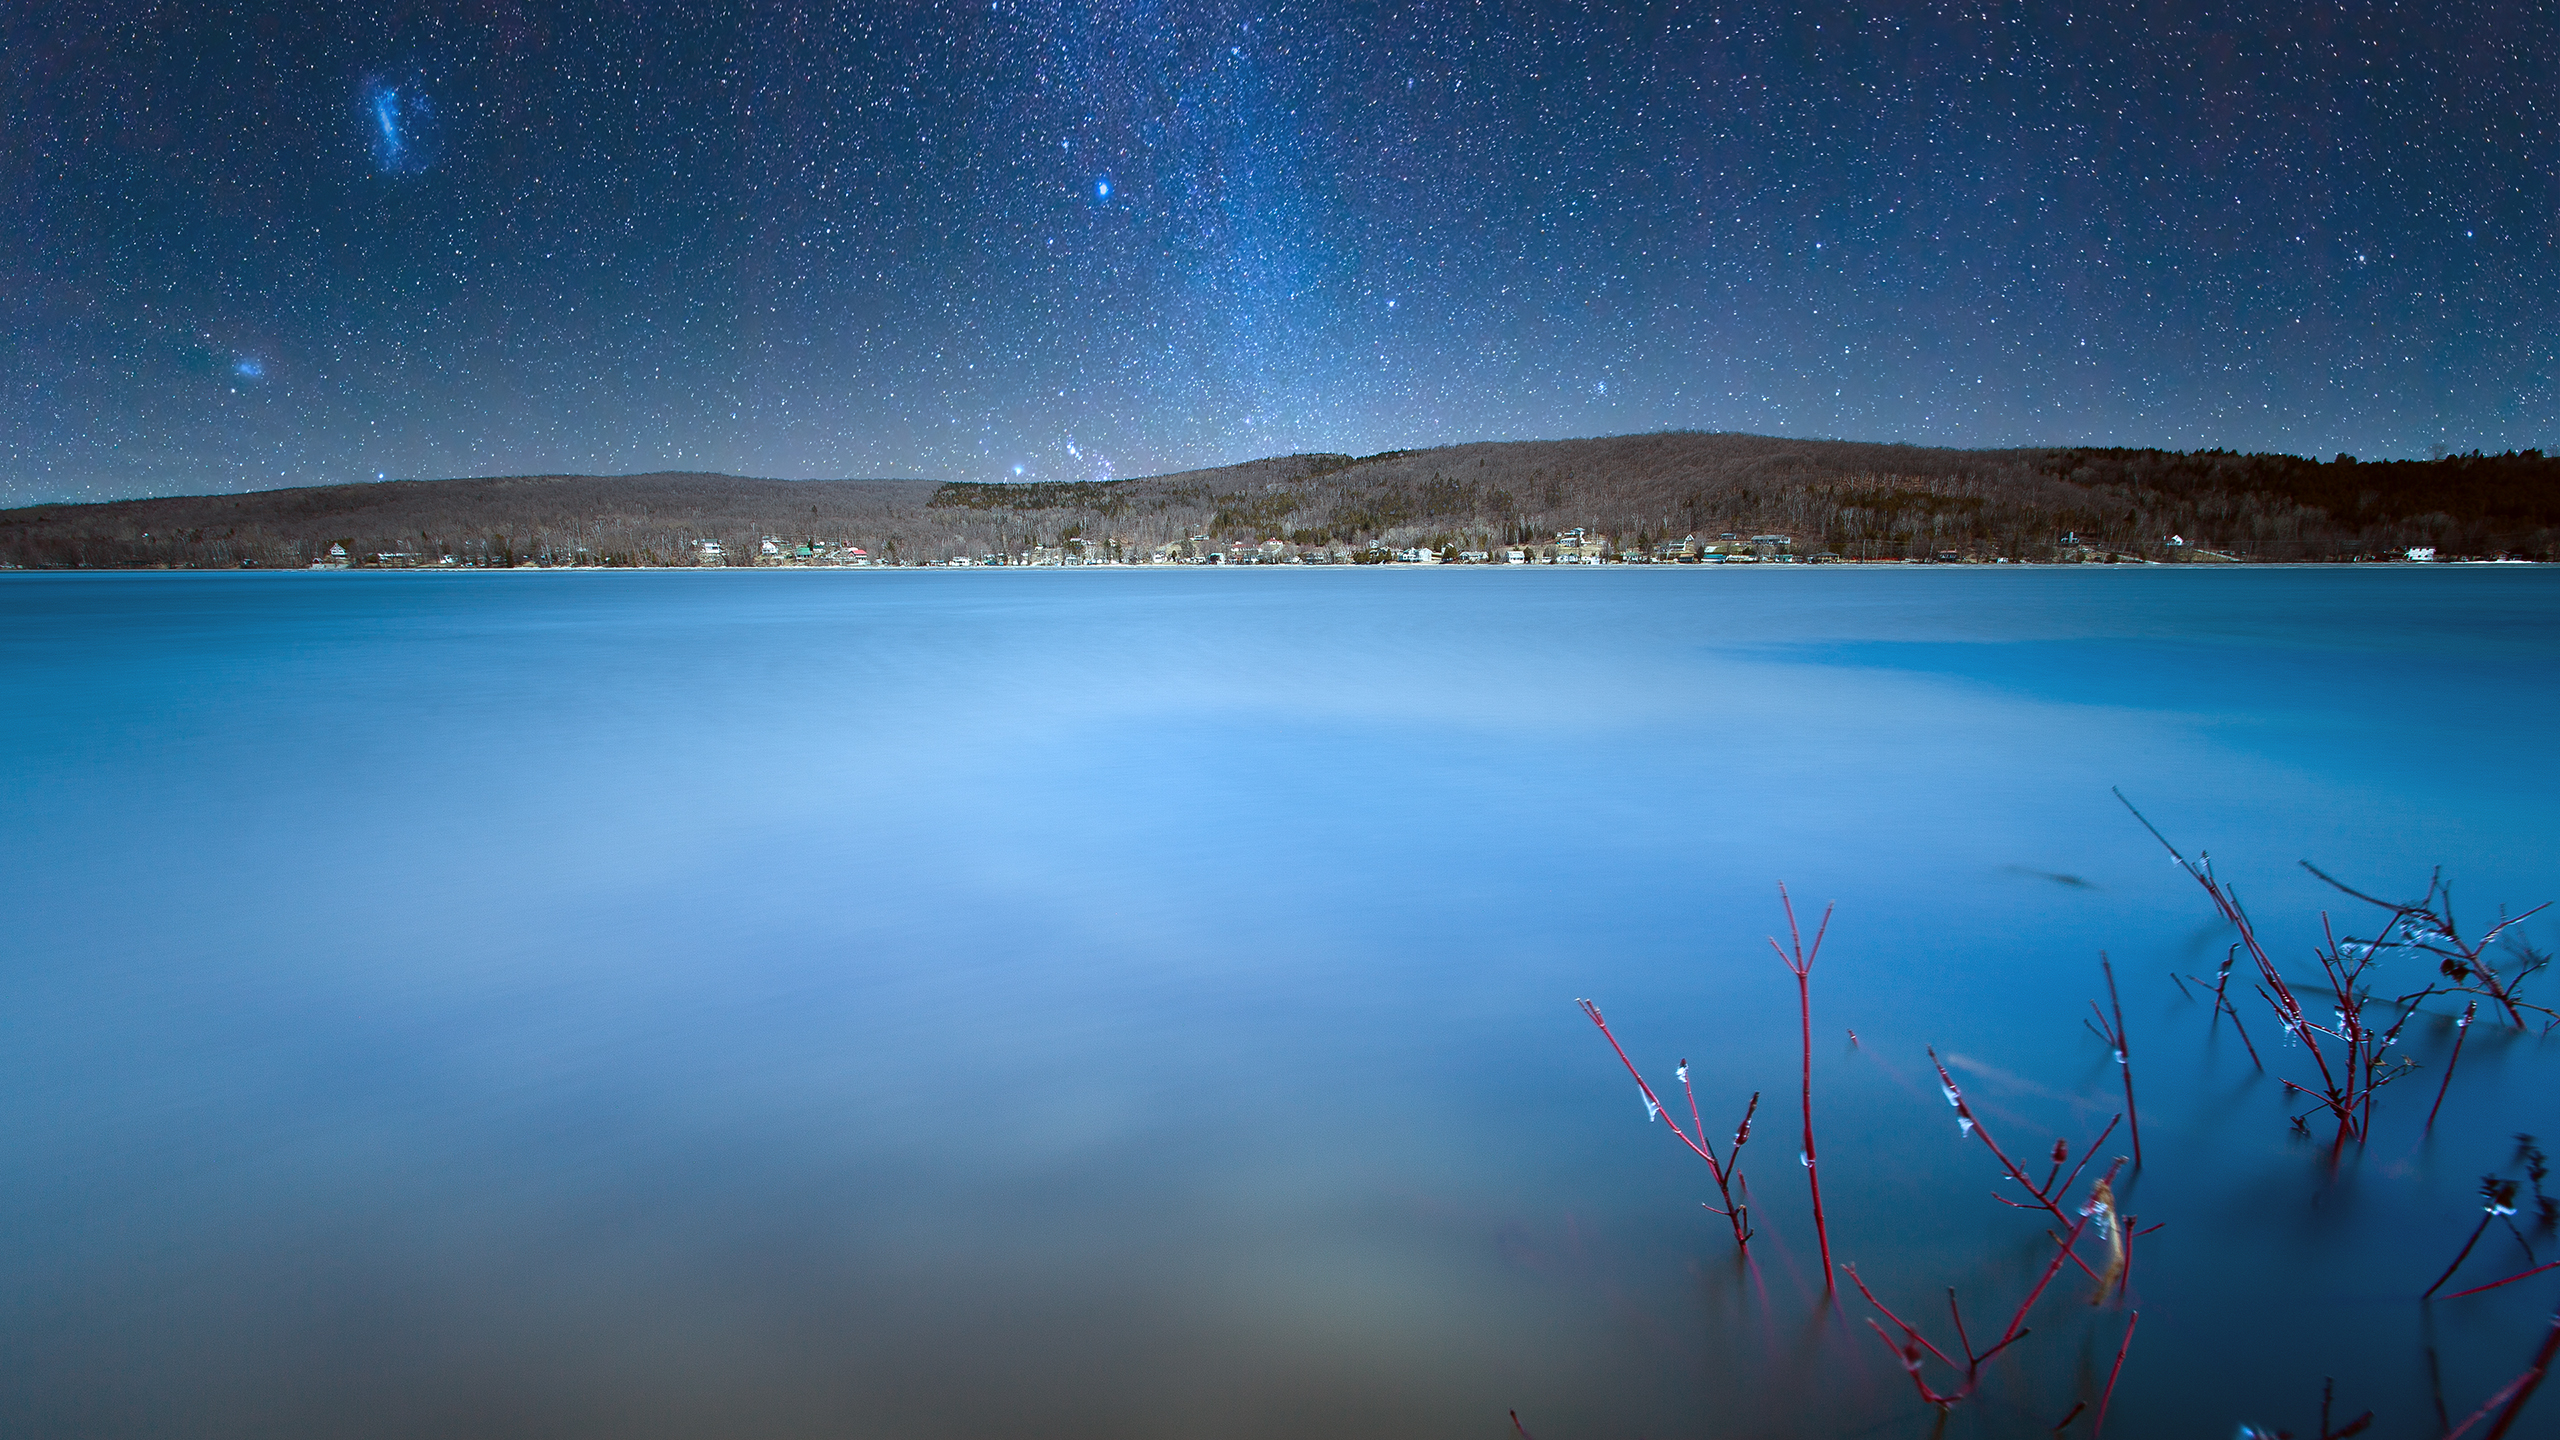 lake_william_milky_way_wallpaper_2560x1440